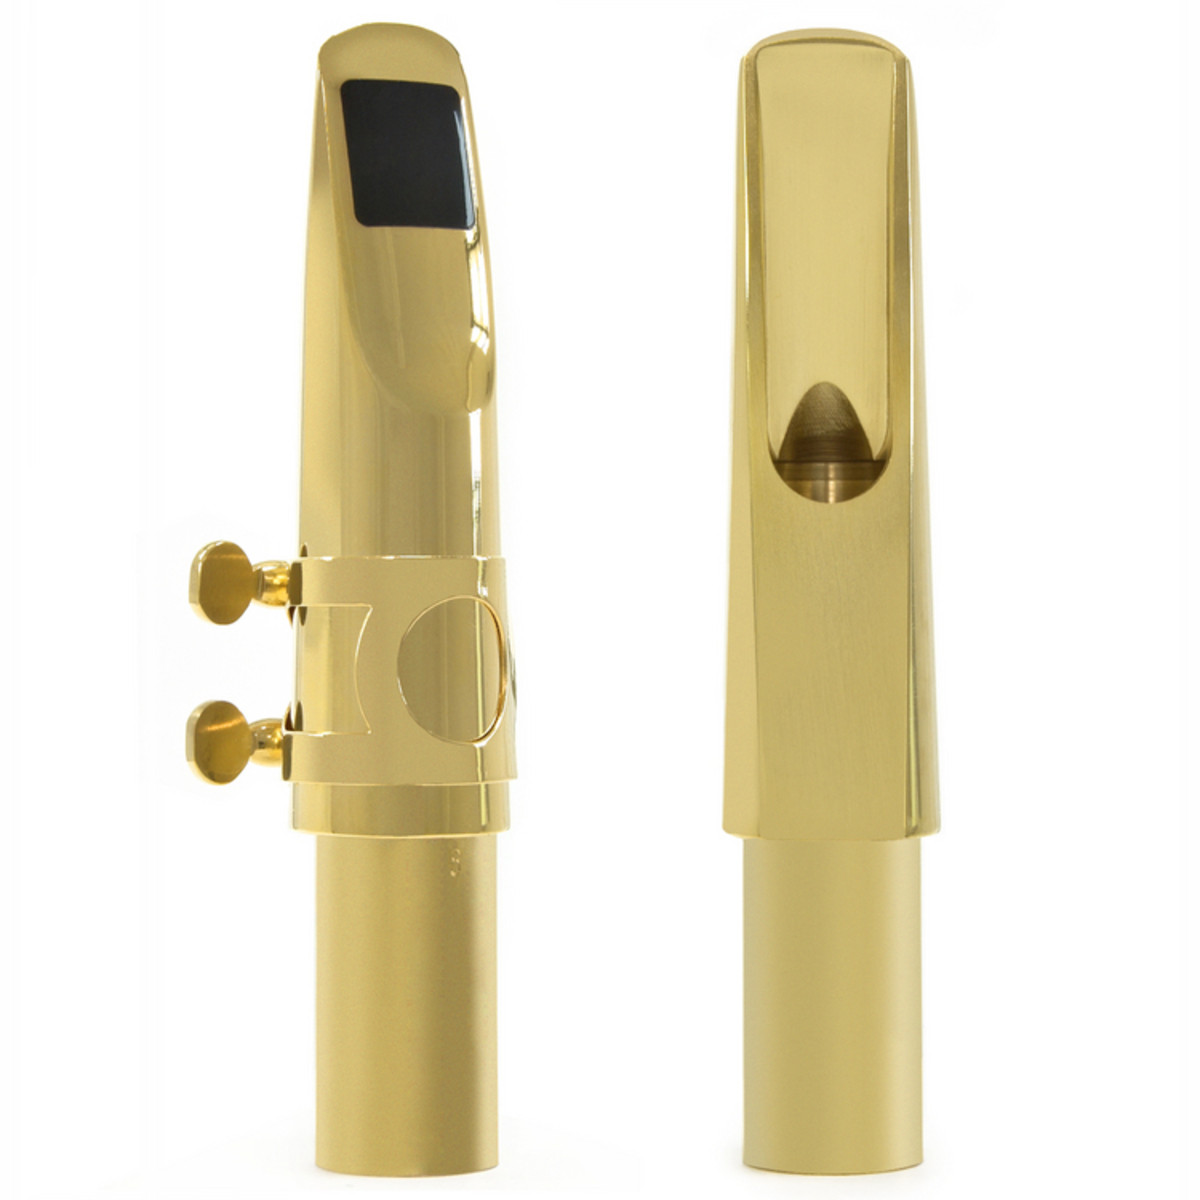 Image of Baritone Saxophone Metal Mouthpiece by Gear4music